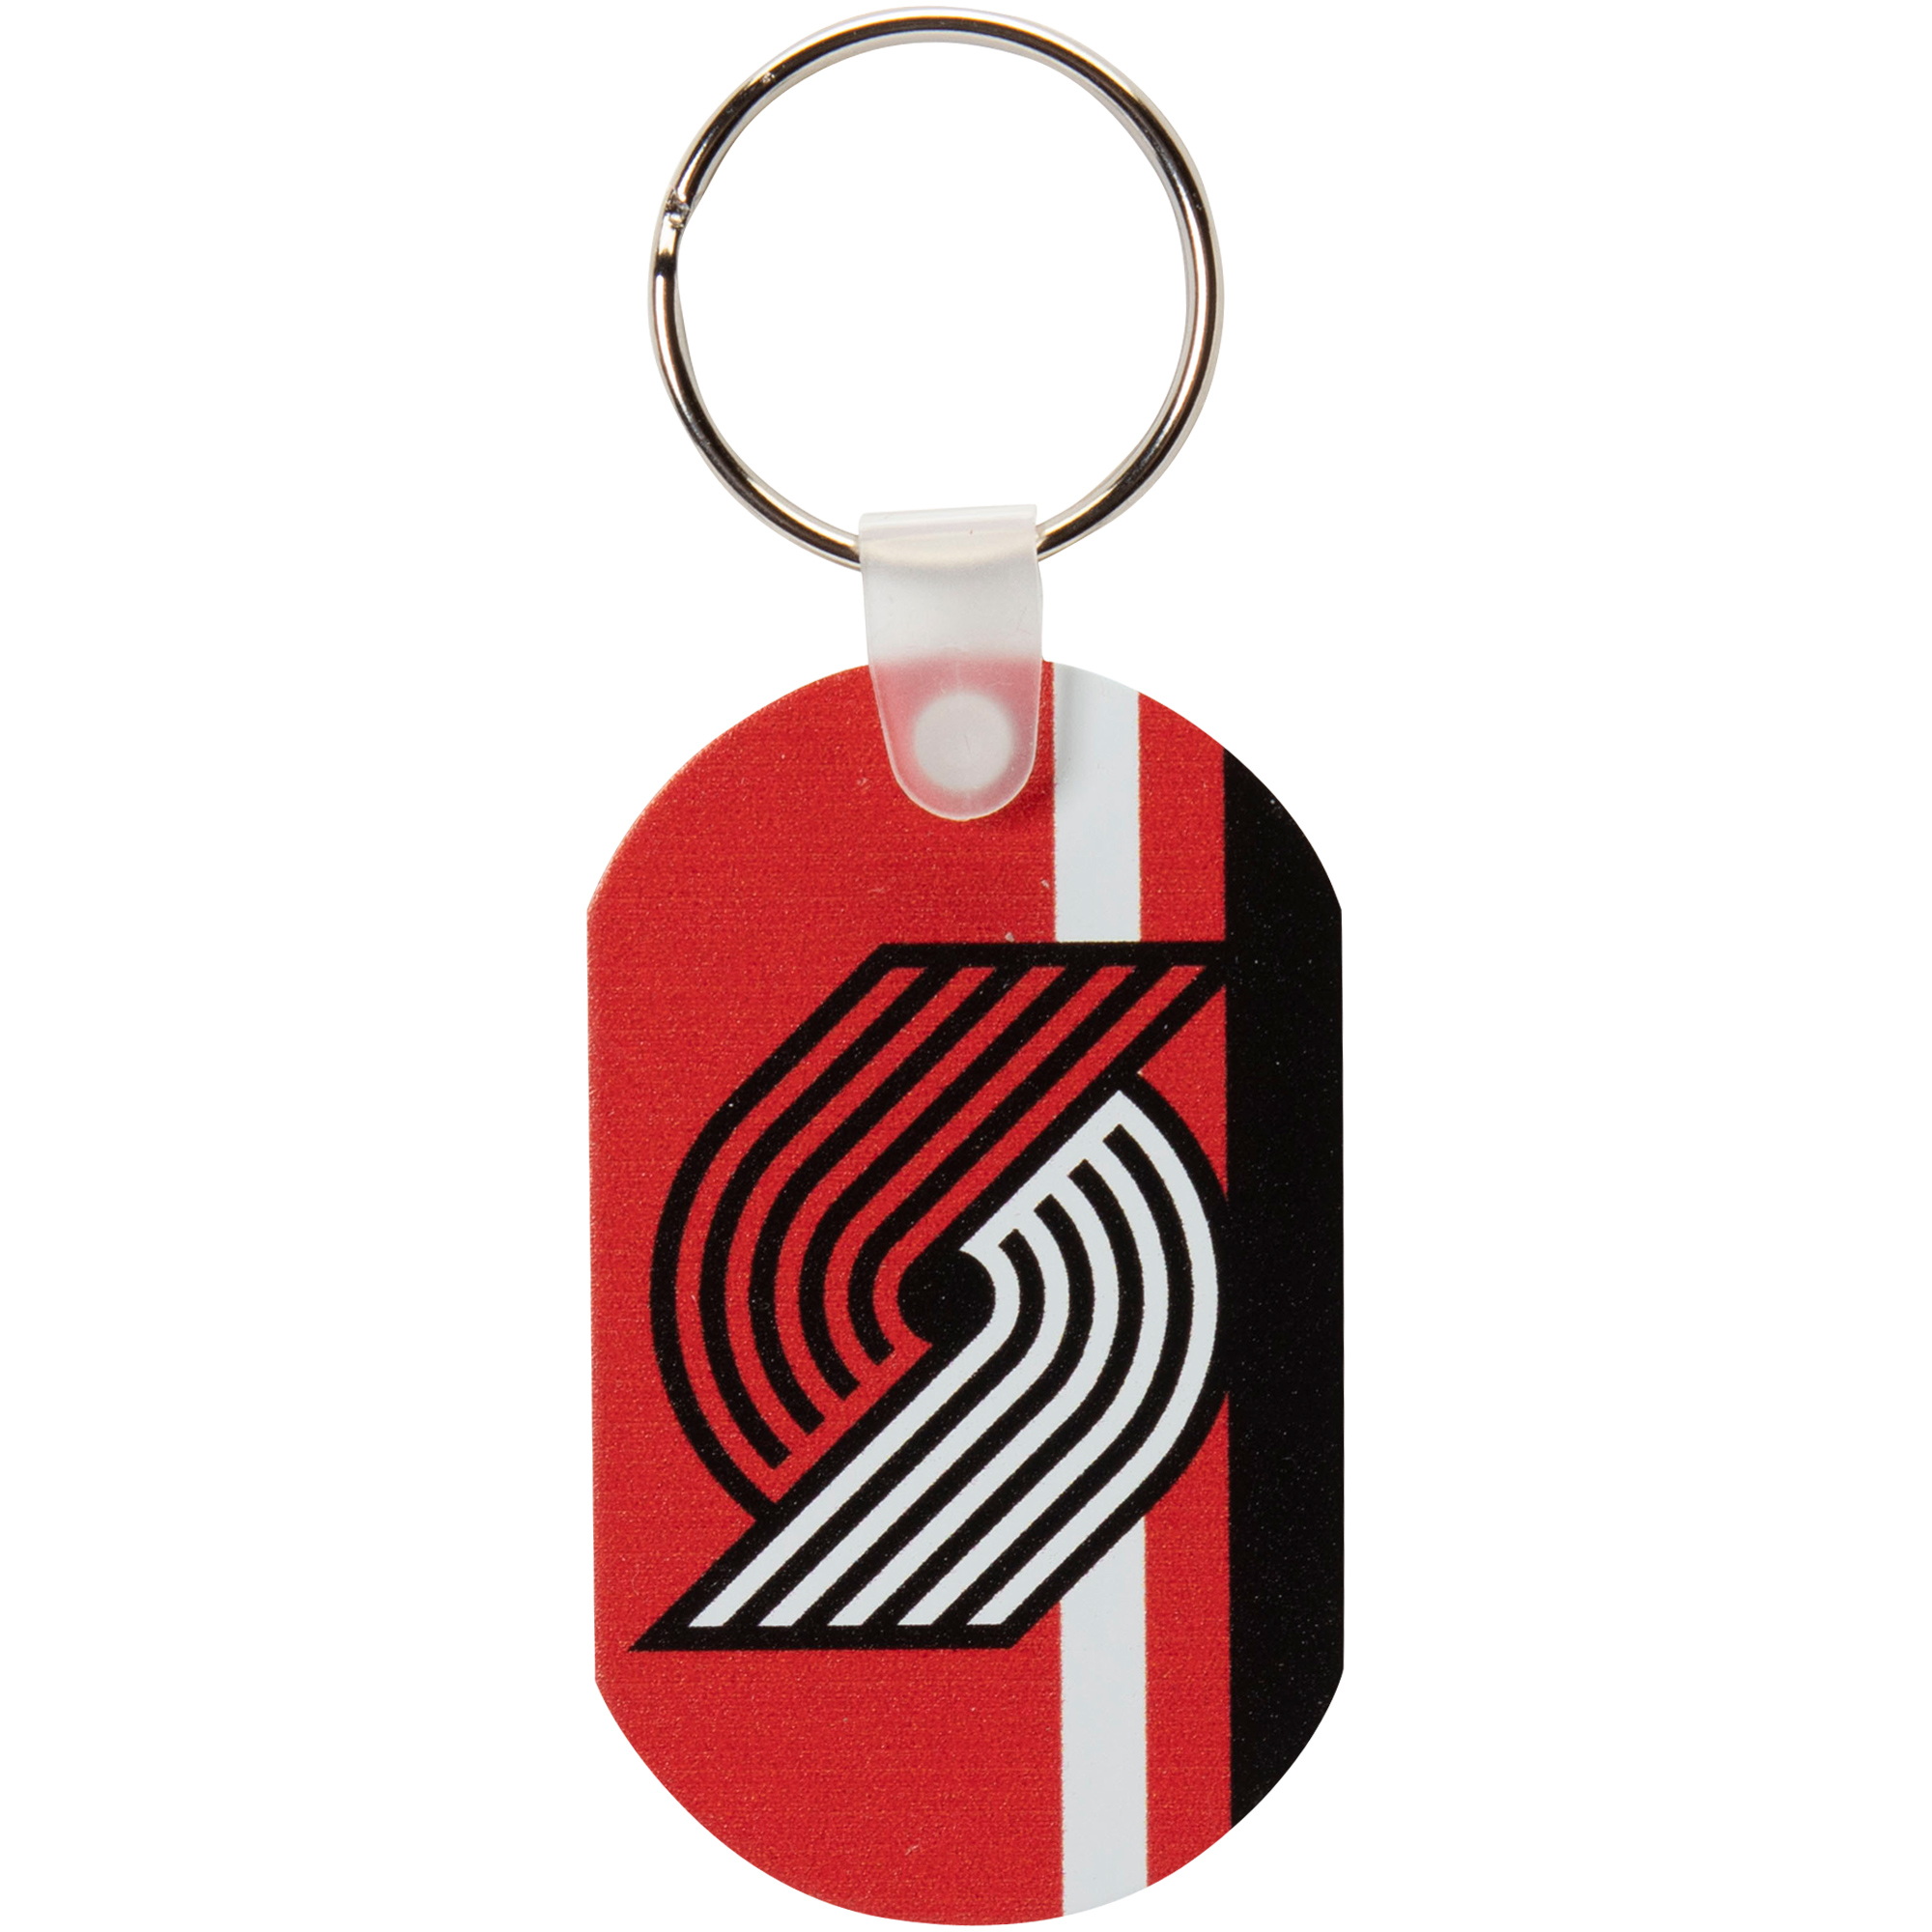 Portland Trail Blazers WinCraft Key Ring - No Size